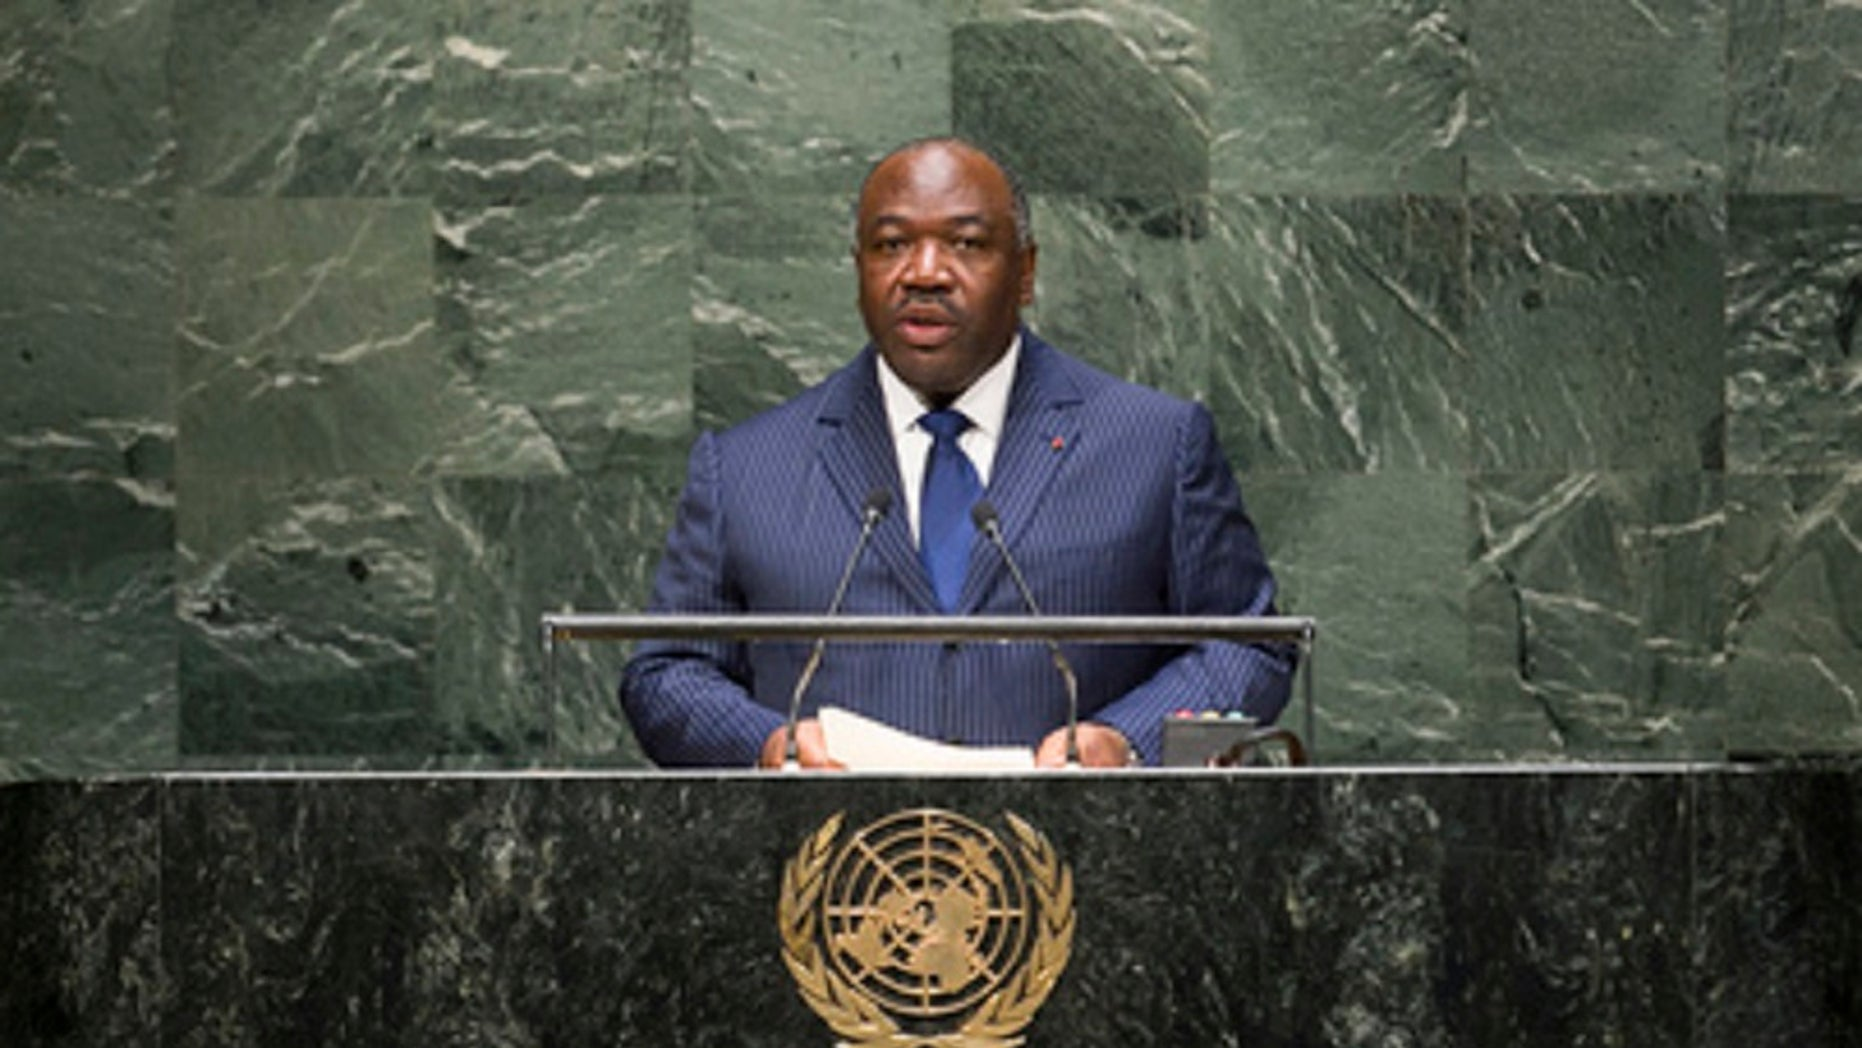 President Ali Bongo, seen here at the U.N., has been out of the country since October amid reports that he had a stroke.